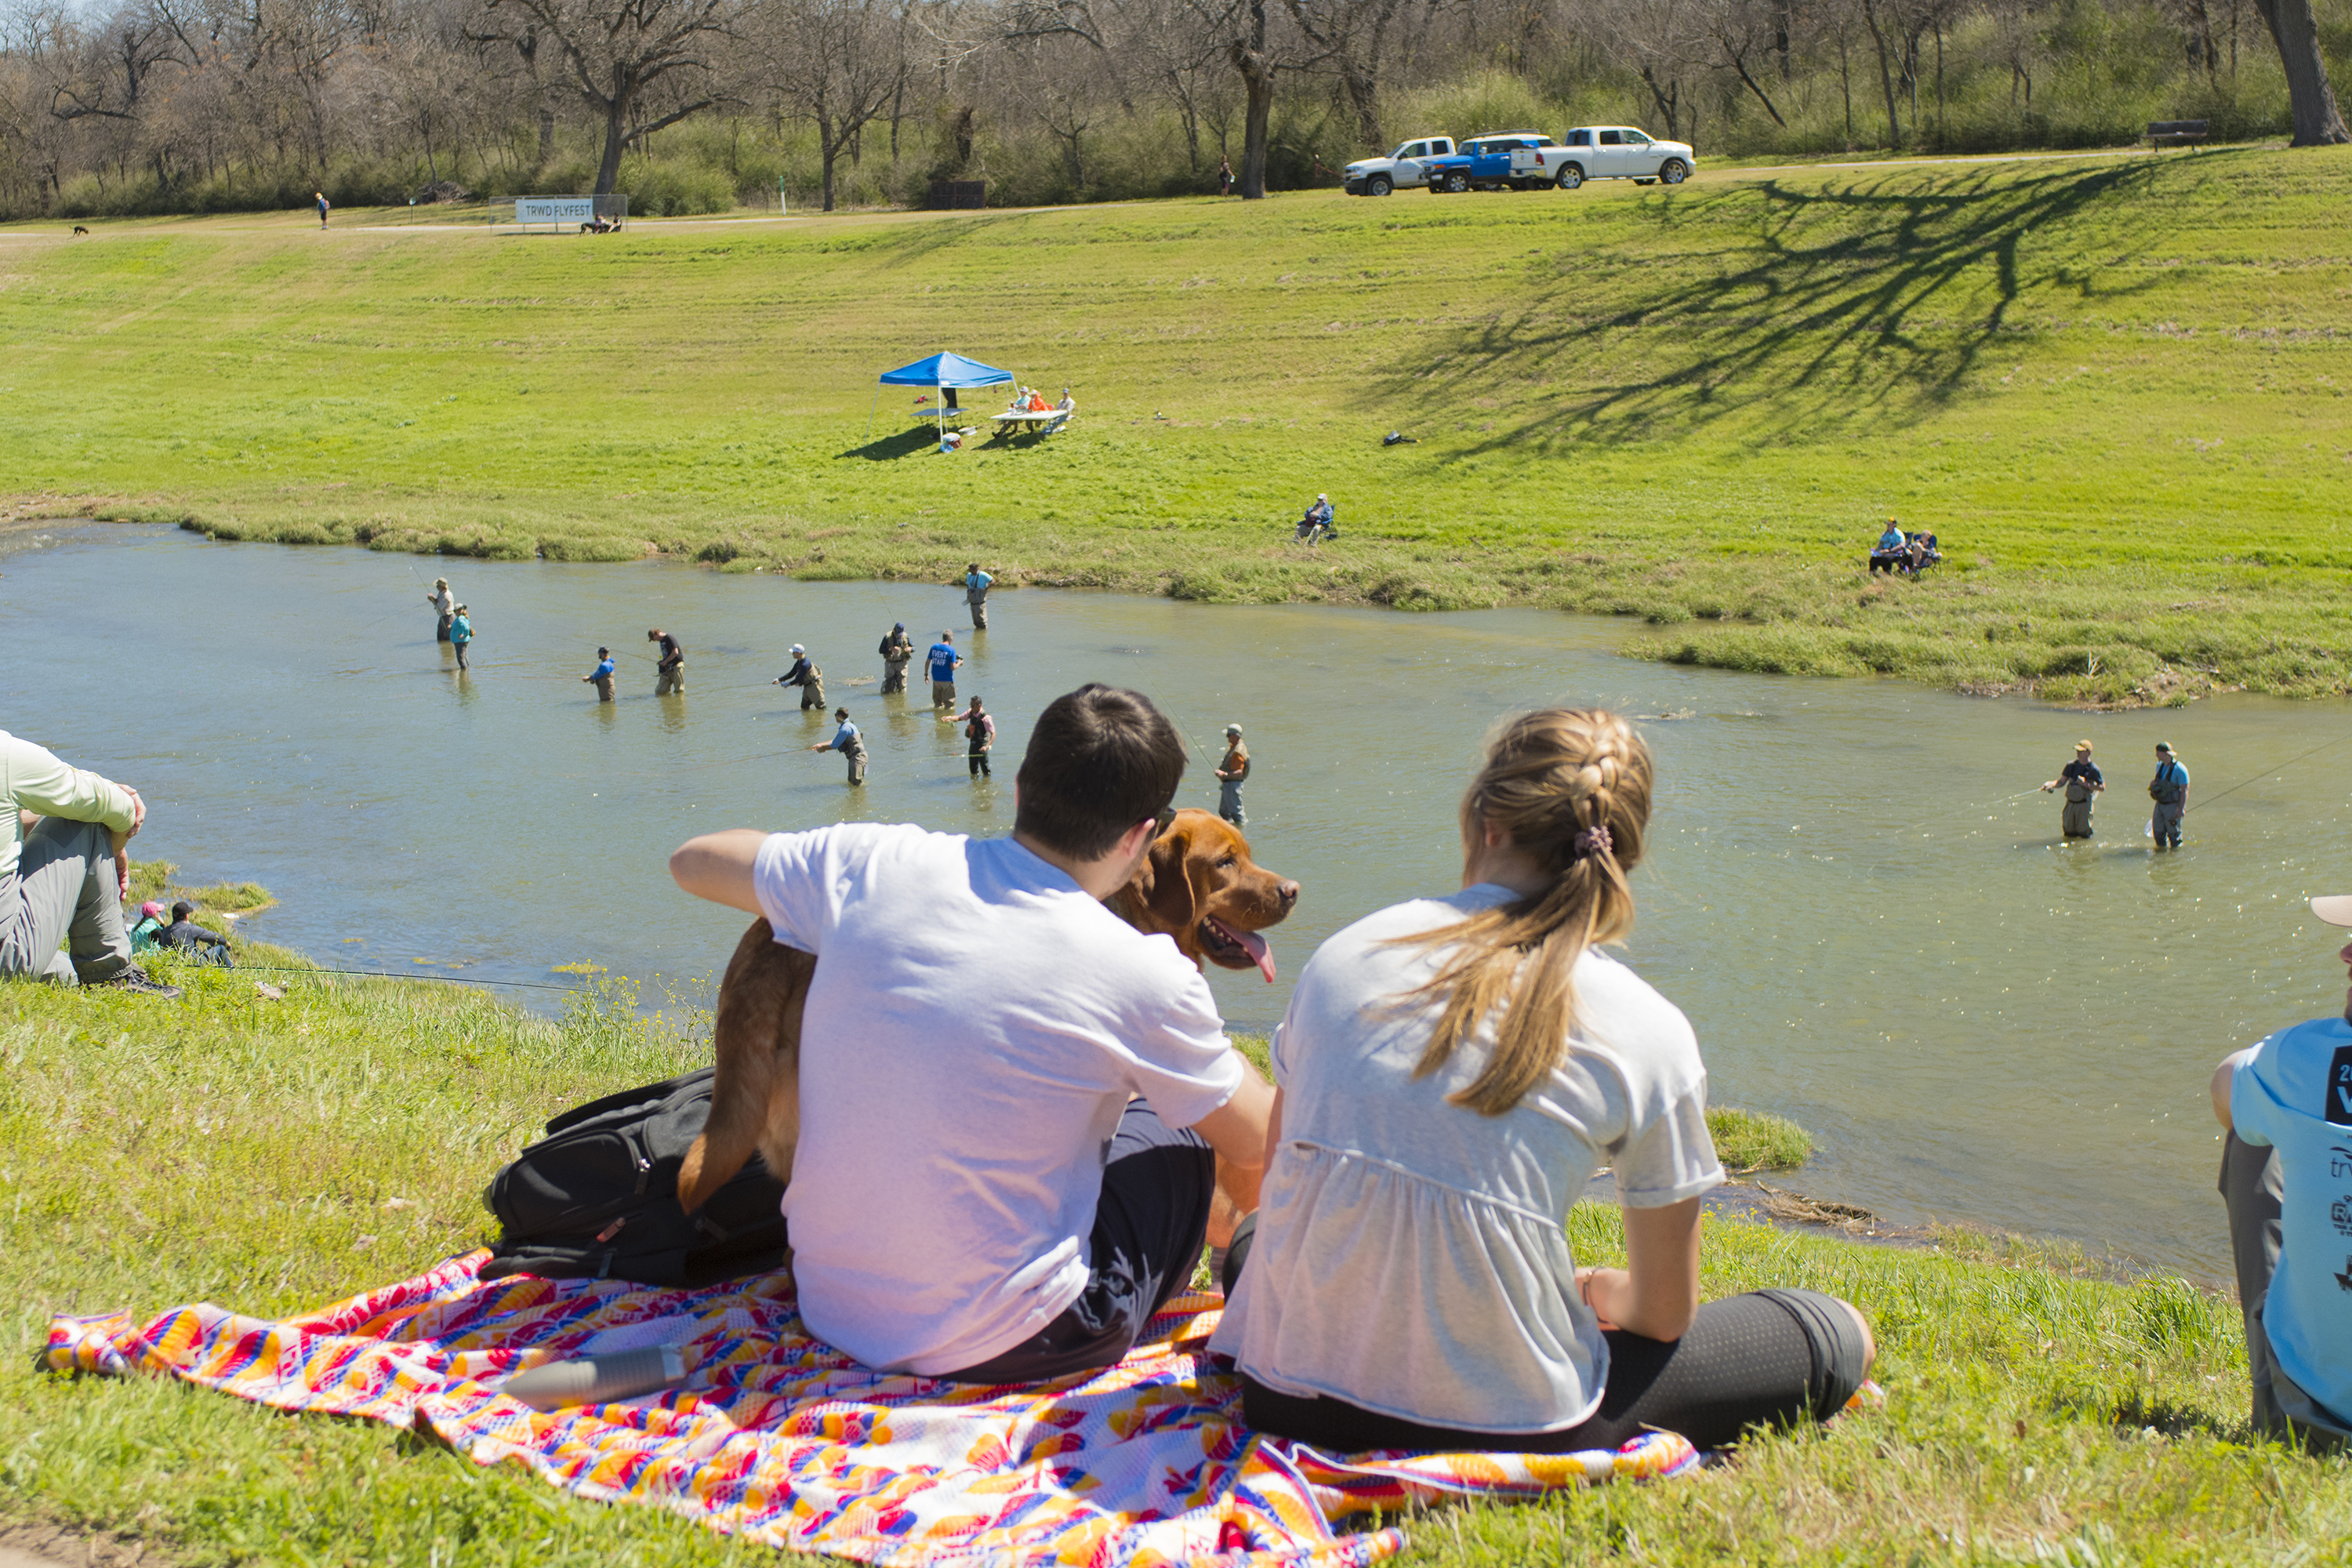 TRWD Flyfest Returns to the Trinity River in Fort Worth on March 13